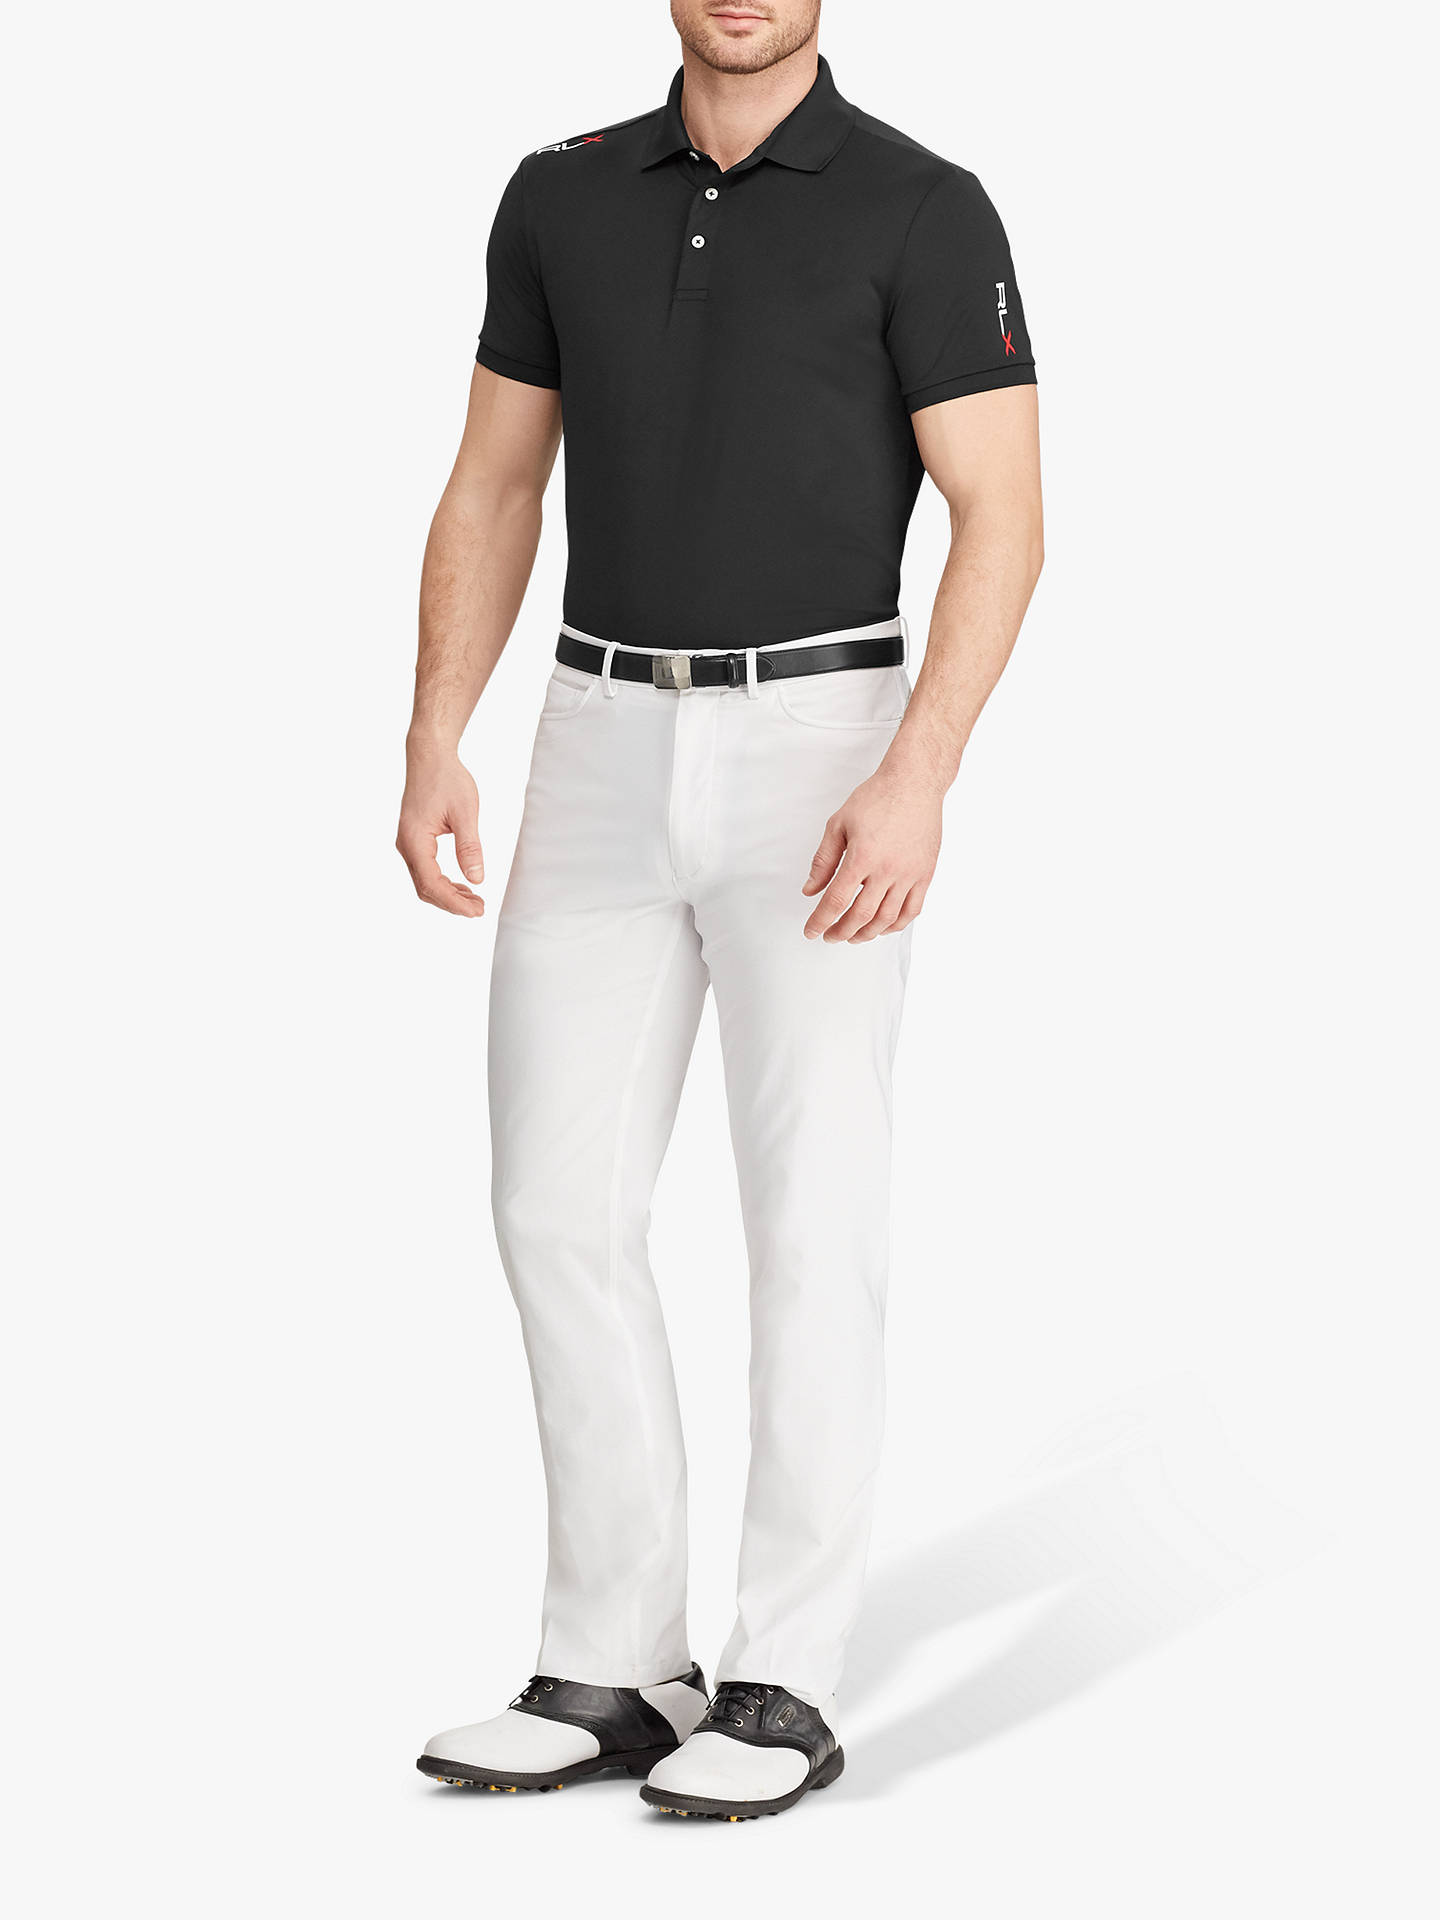 40580b3dfa0 Polo Golf by Ralph Lauren Active Fit Performance Polo Shirt at John ...